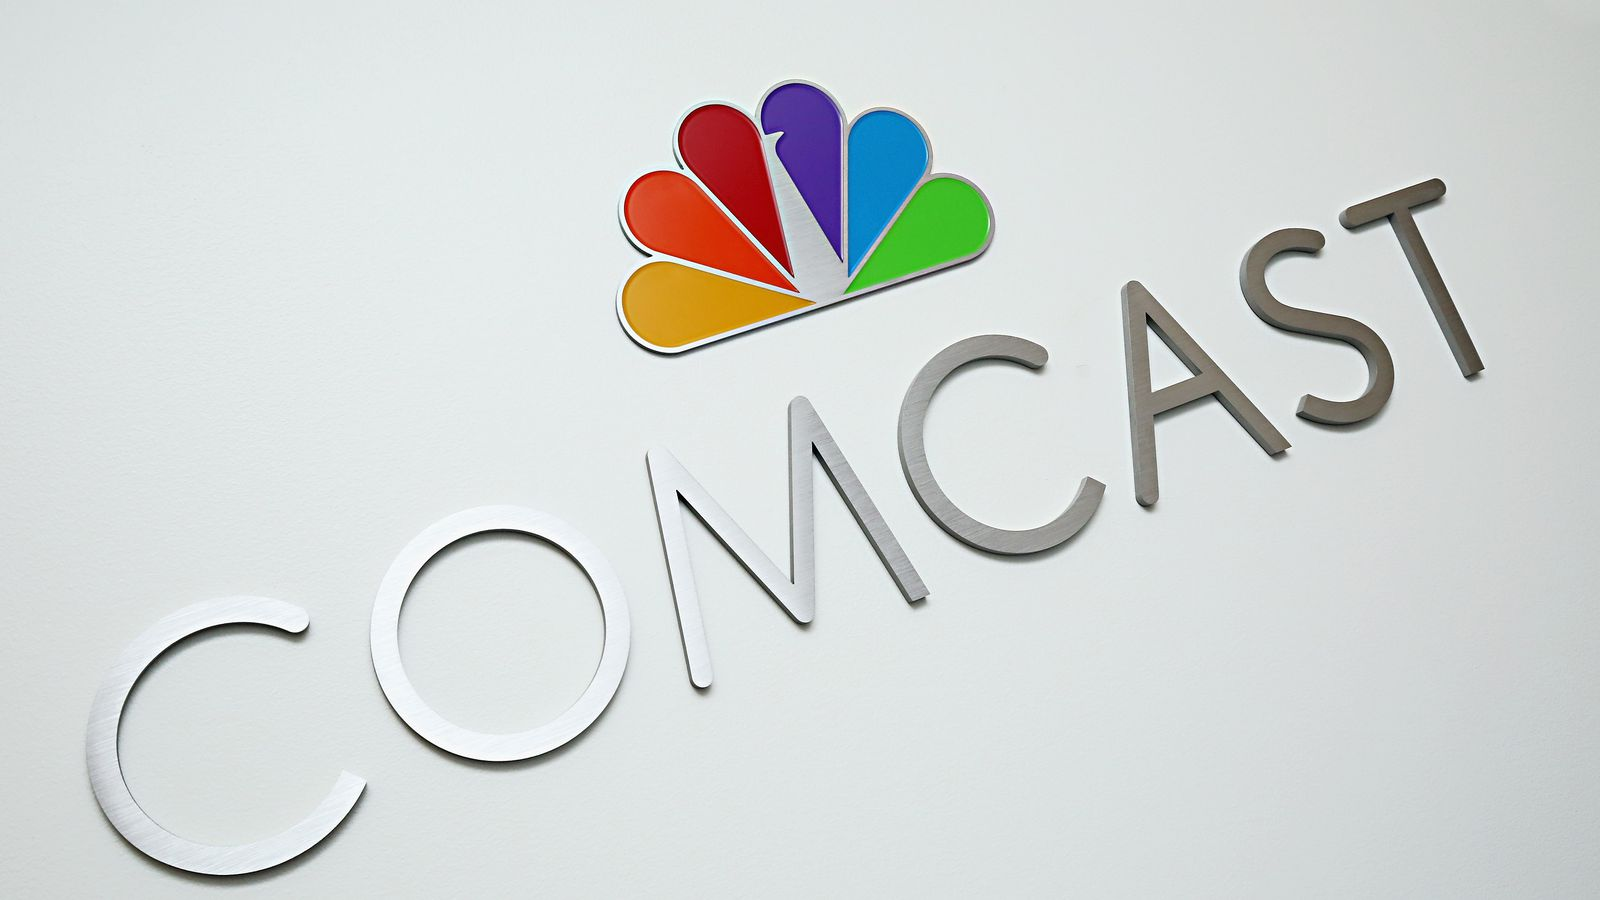 Comcast Internet Deals >> Comcast reportedly planning streaming TV service just for its internet customers - The Verge